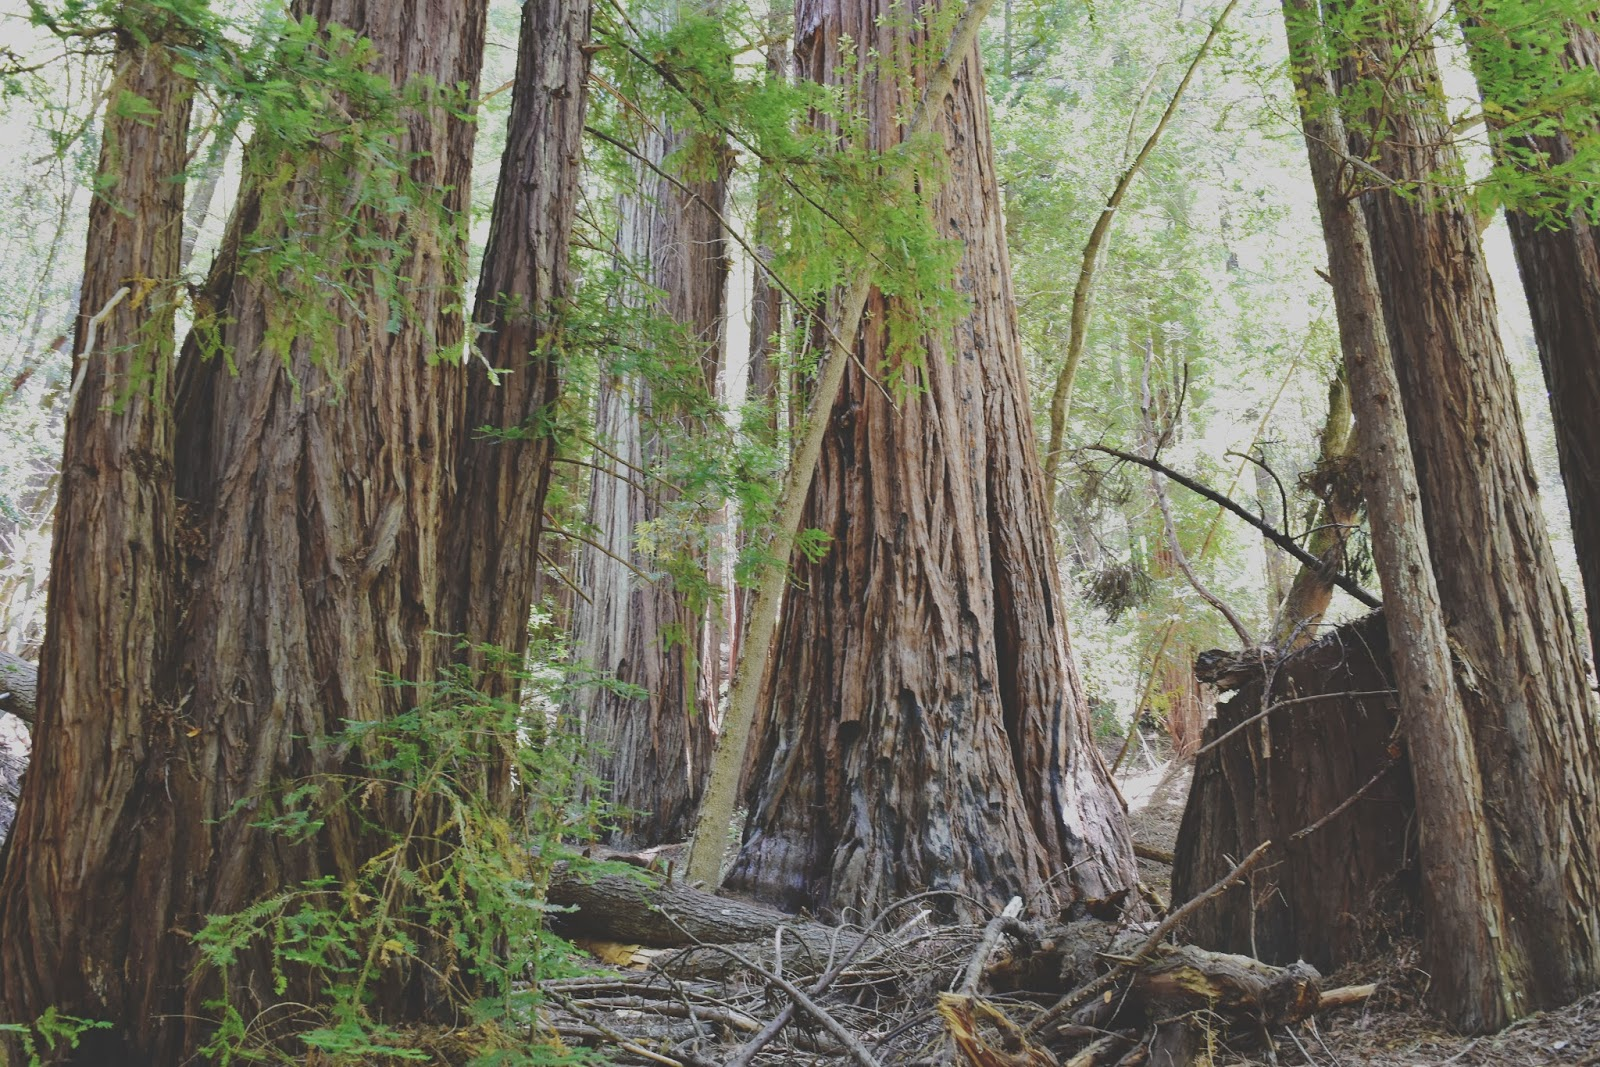 redwoods in the Russian River Valley, California